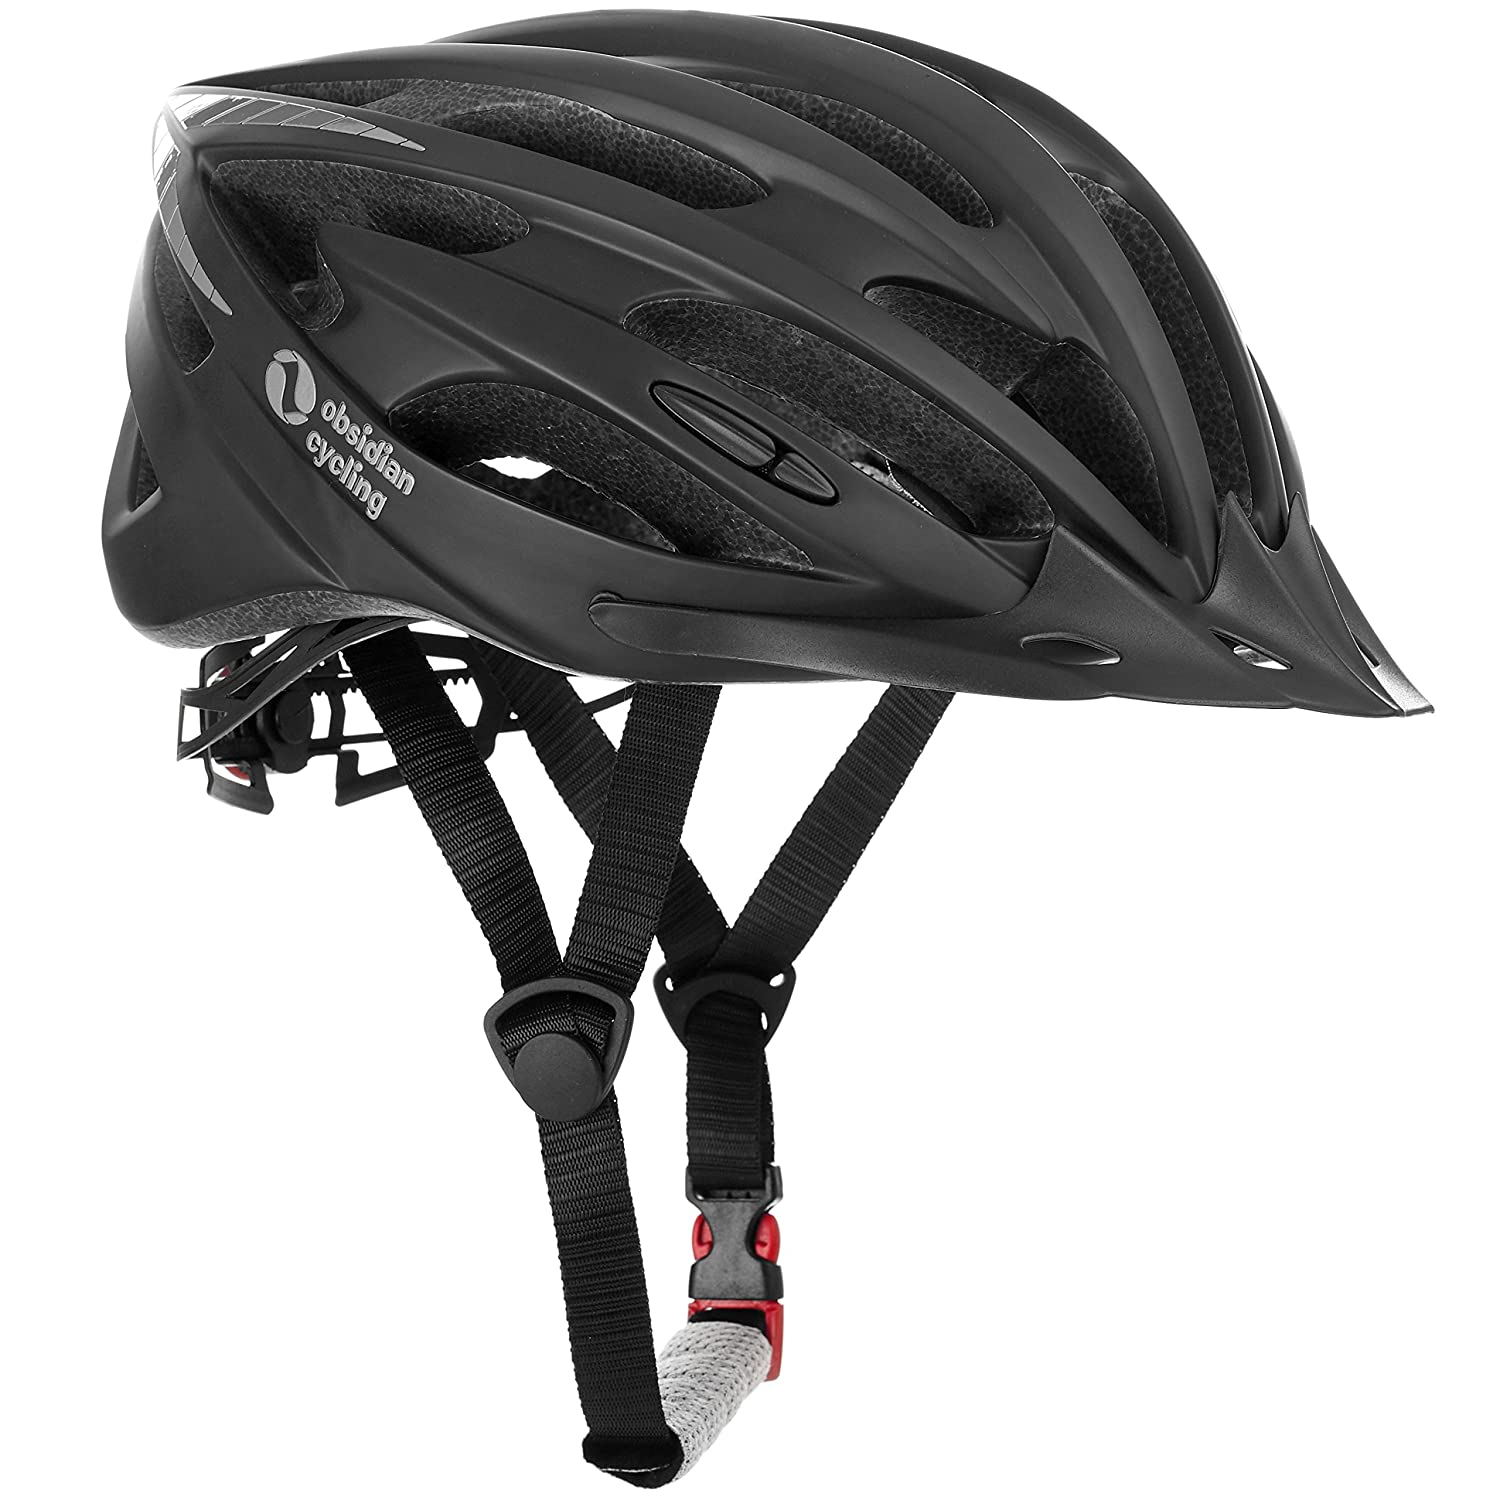 TeamObsidian Airflow Bike Helmet with in-Molded Reinforcing Skeleton for Added Protection - Adult Size, CPSC Safety Certified - Comfortable, Lightweight, Breathable Urban Street or Mountain Biking - Best Cycling Gift Idea